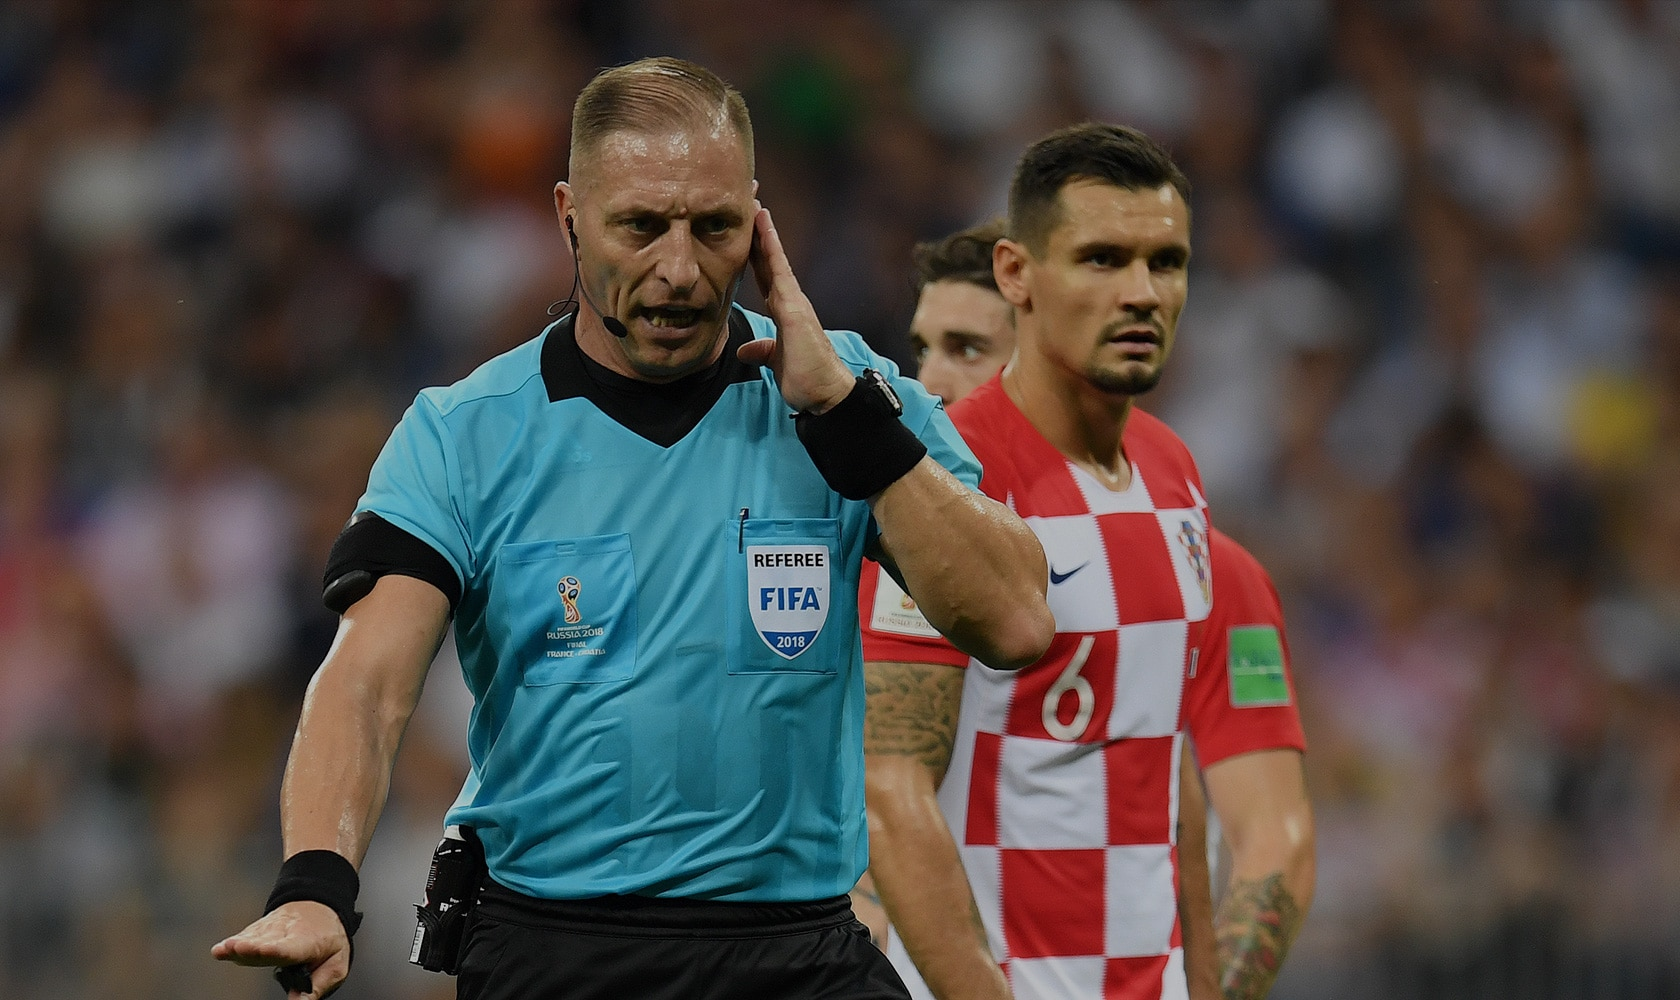 MOSCOW, RUSSIA - JULY 15: Referee Nestor Pitana holds his hand to his ear before consulting VAR and consequently awarding France a penalty during the 2018 FIFA World Cup Final between France and Croatia at Luzhniki Stadium on July 15, 2018 in Moscow, Russia. (Photo by Matthias Hangst/Getty Images)